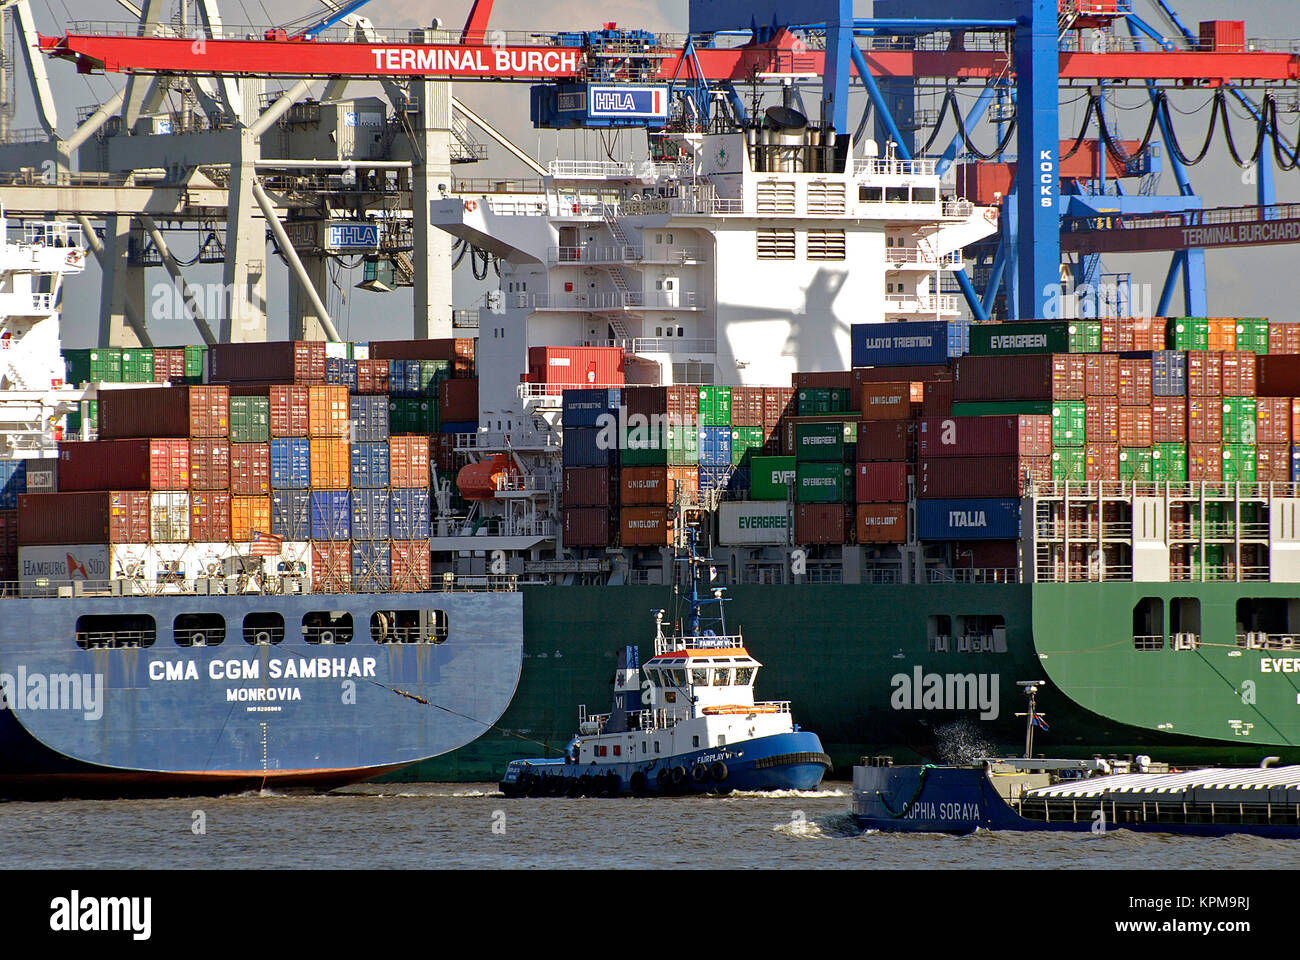 Hamburg, one of the most beautiful and most popular tourist destinations in the world. Container Terminal Burchardkai, - Stock Image